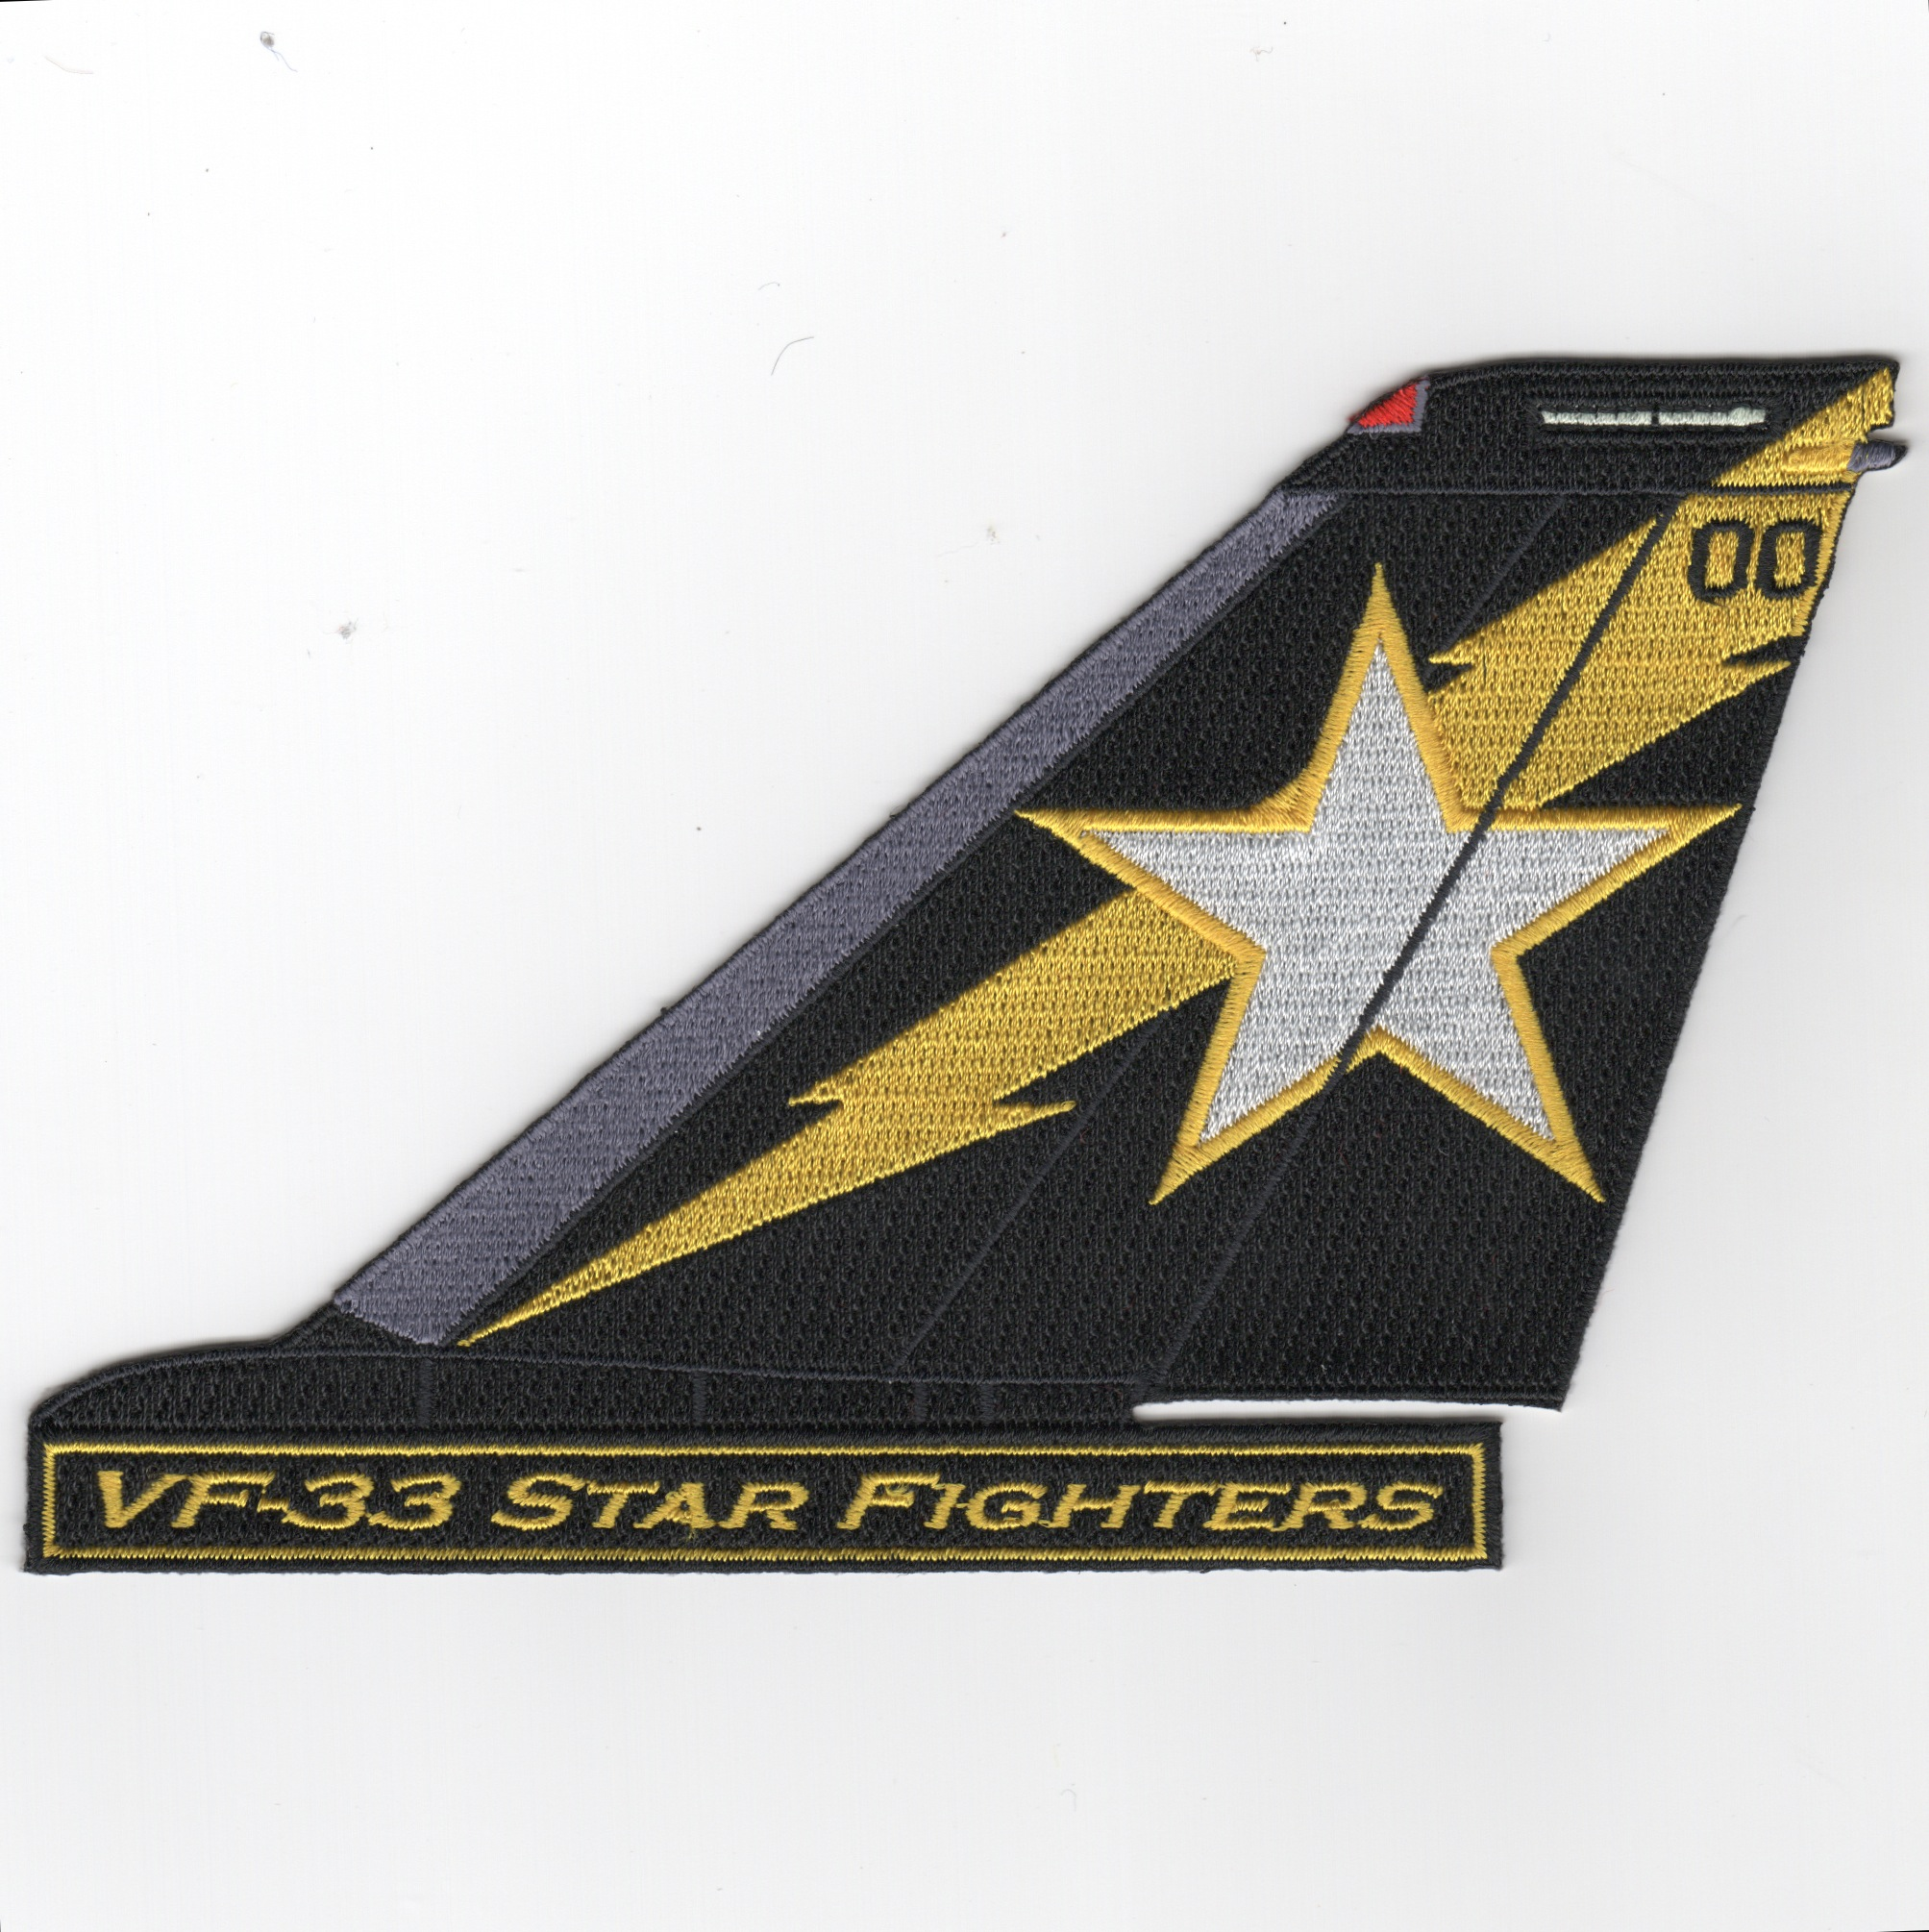 VF-33 F-14 Tailfin (Text)